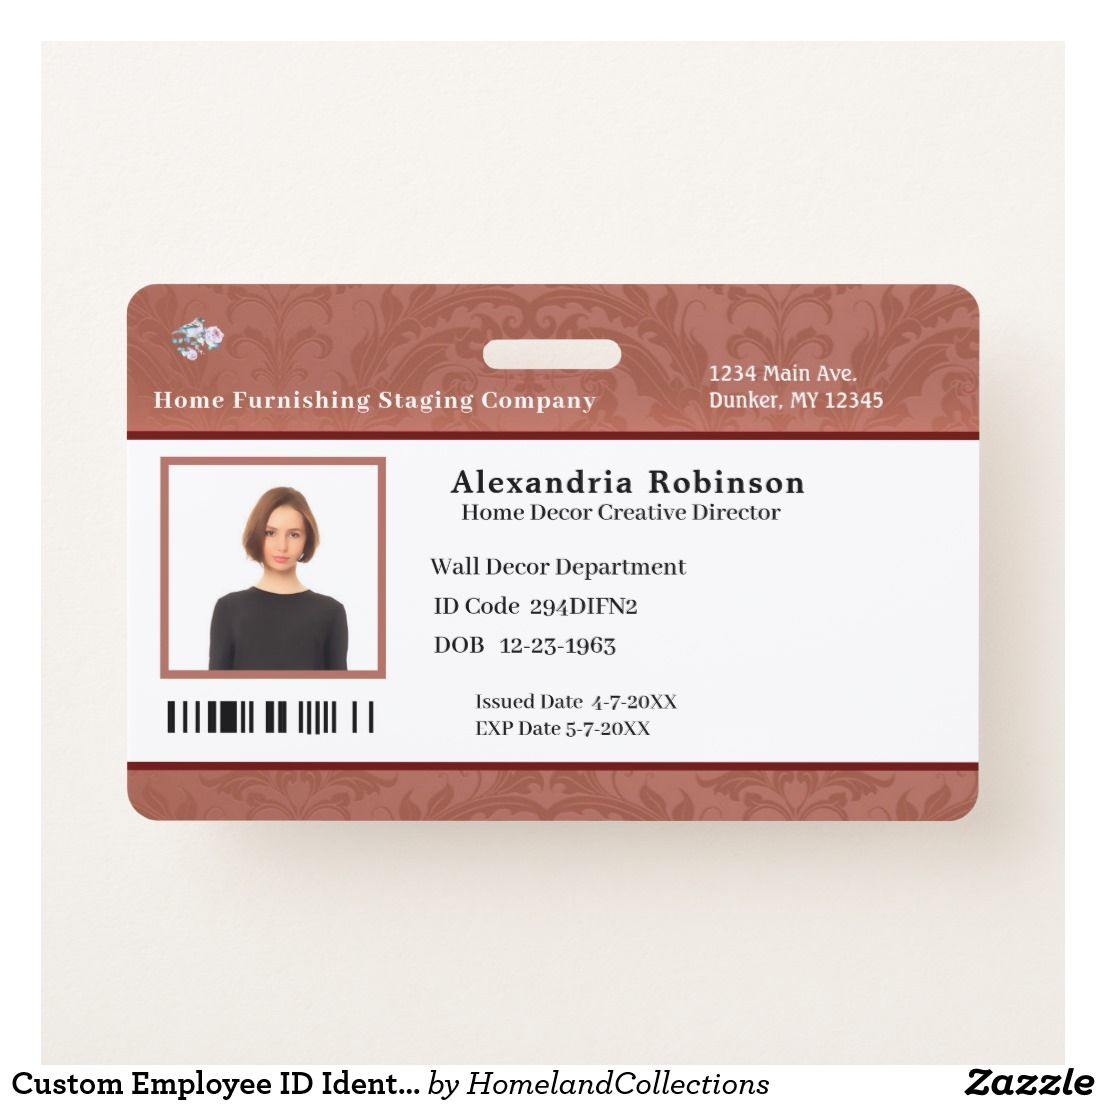 Custom Employee Id Identification Photo Bar Code Badge Zazzle Com Custom Medical Business Custom Badges